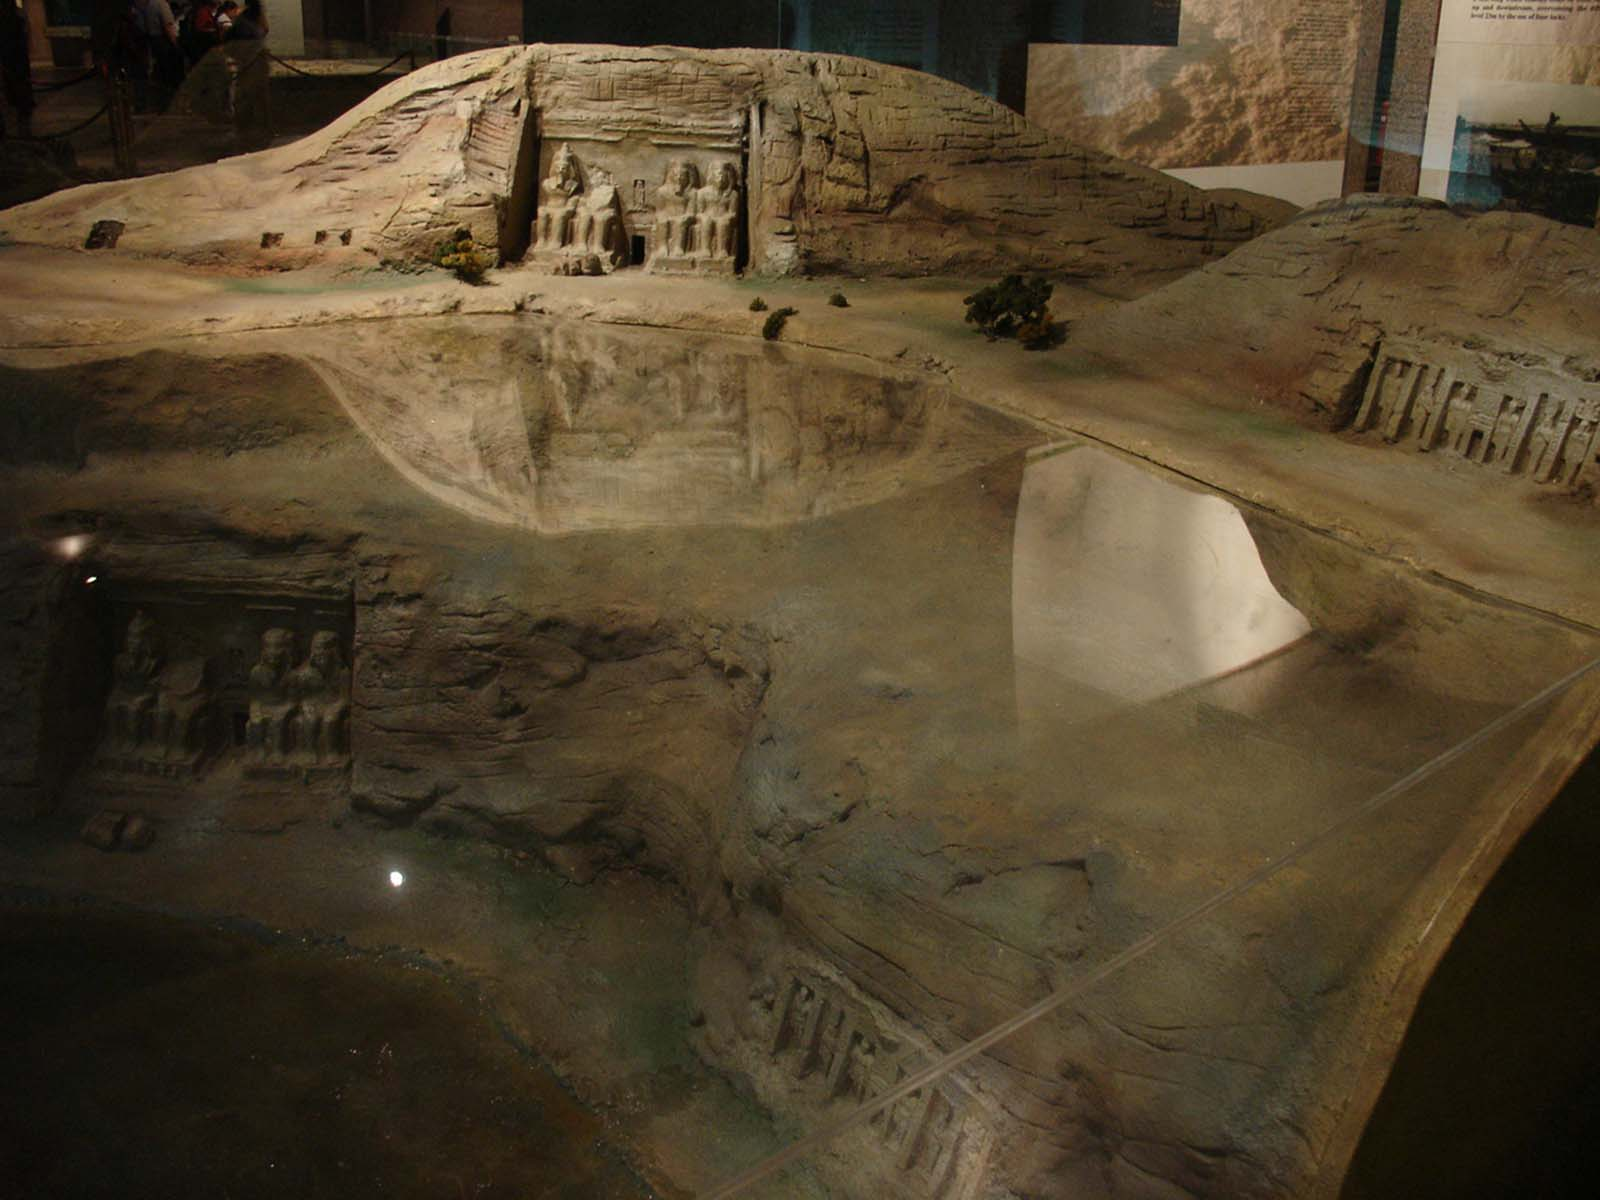 A scale model showing the original and current location of the temple (with respect to the water level) at the Nubian Museum, in Aswan.